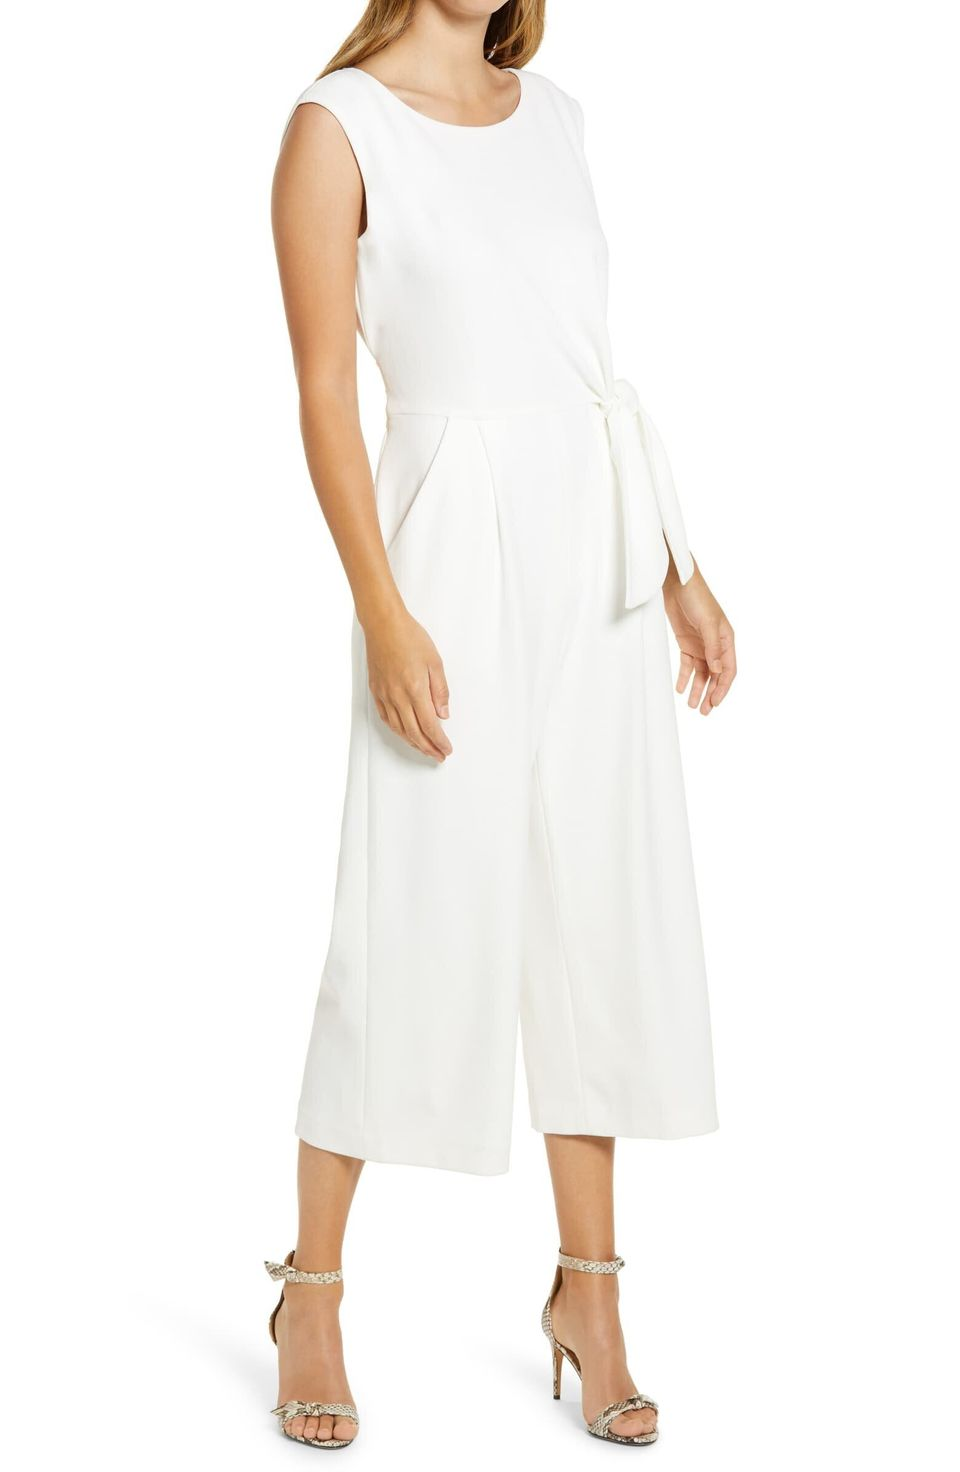 The Best Deals On Dresses And Jumpsuits During Nordstrom's Anniversary Sale 15